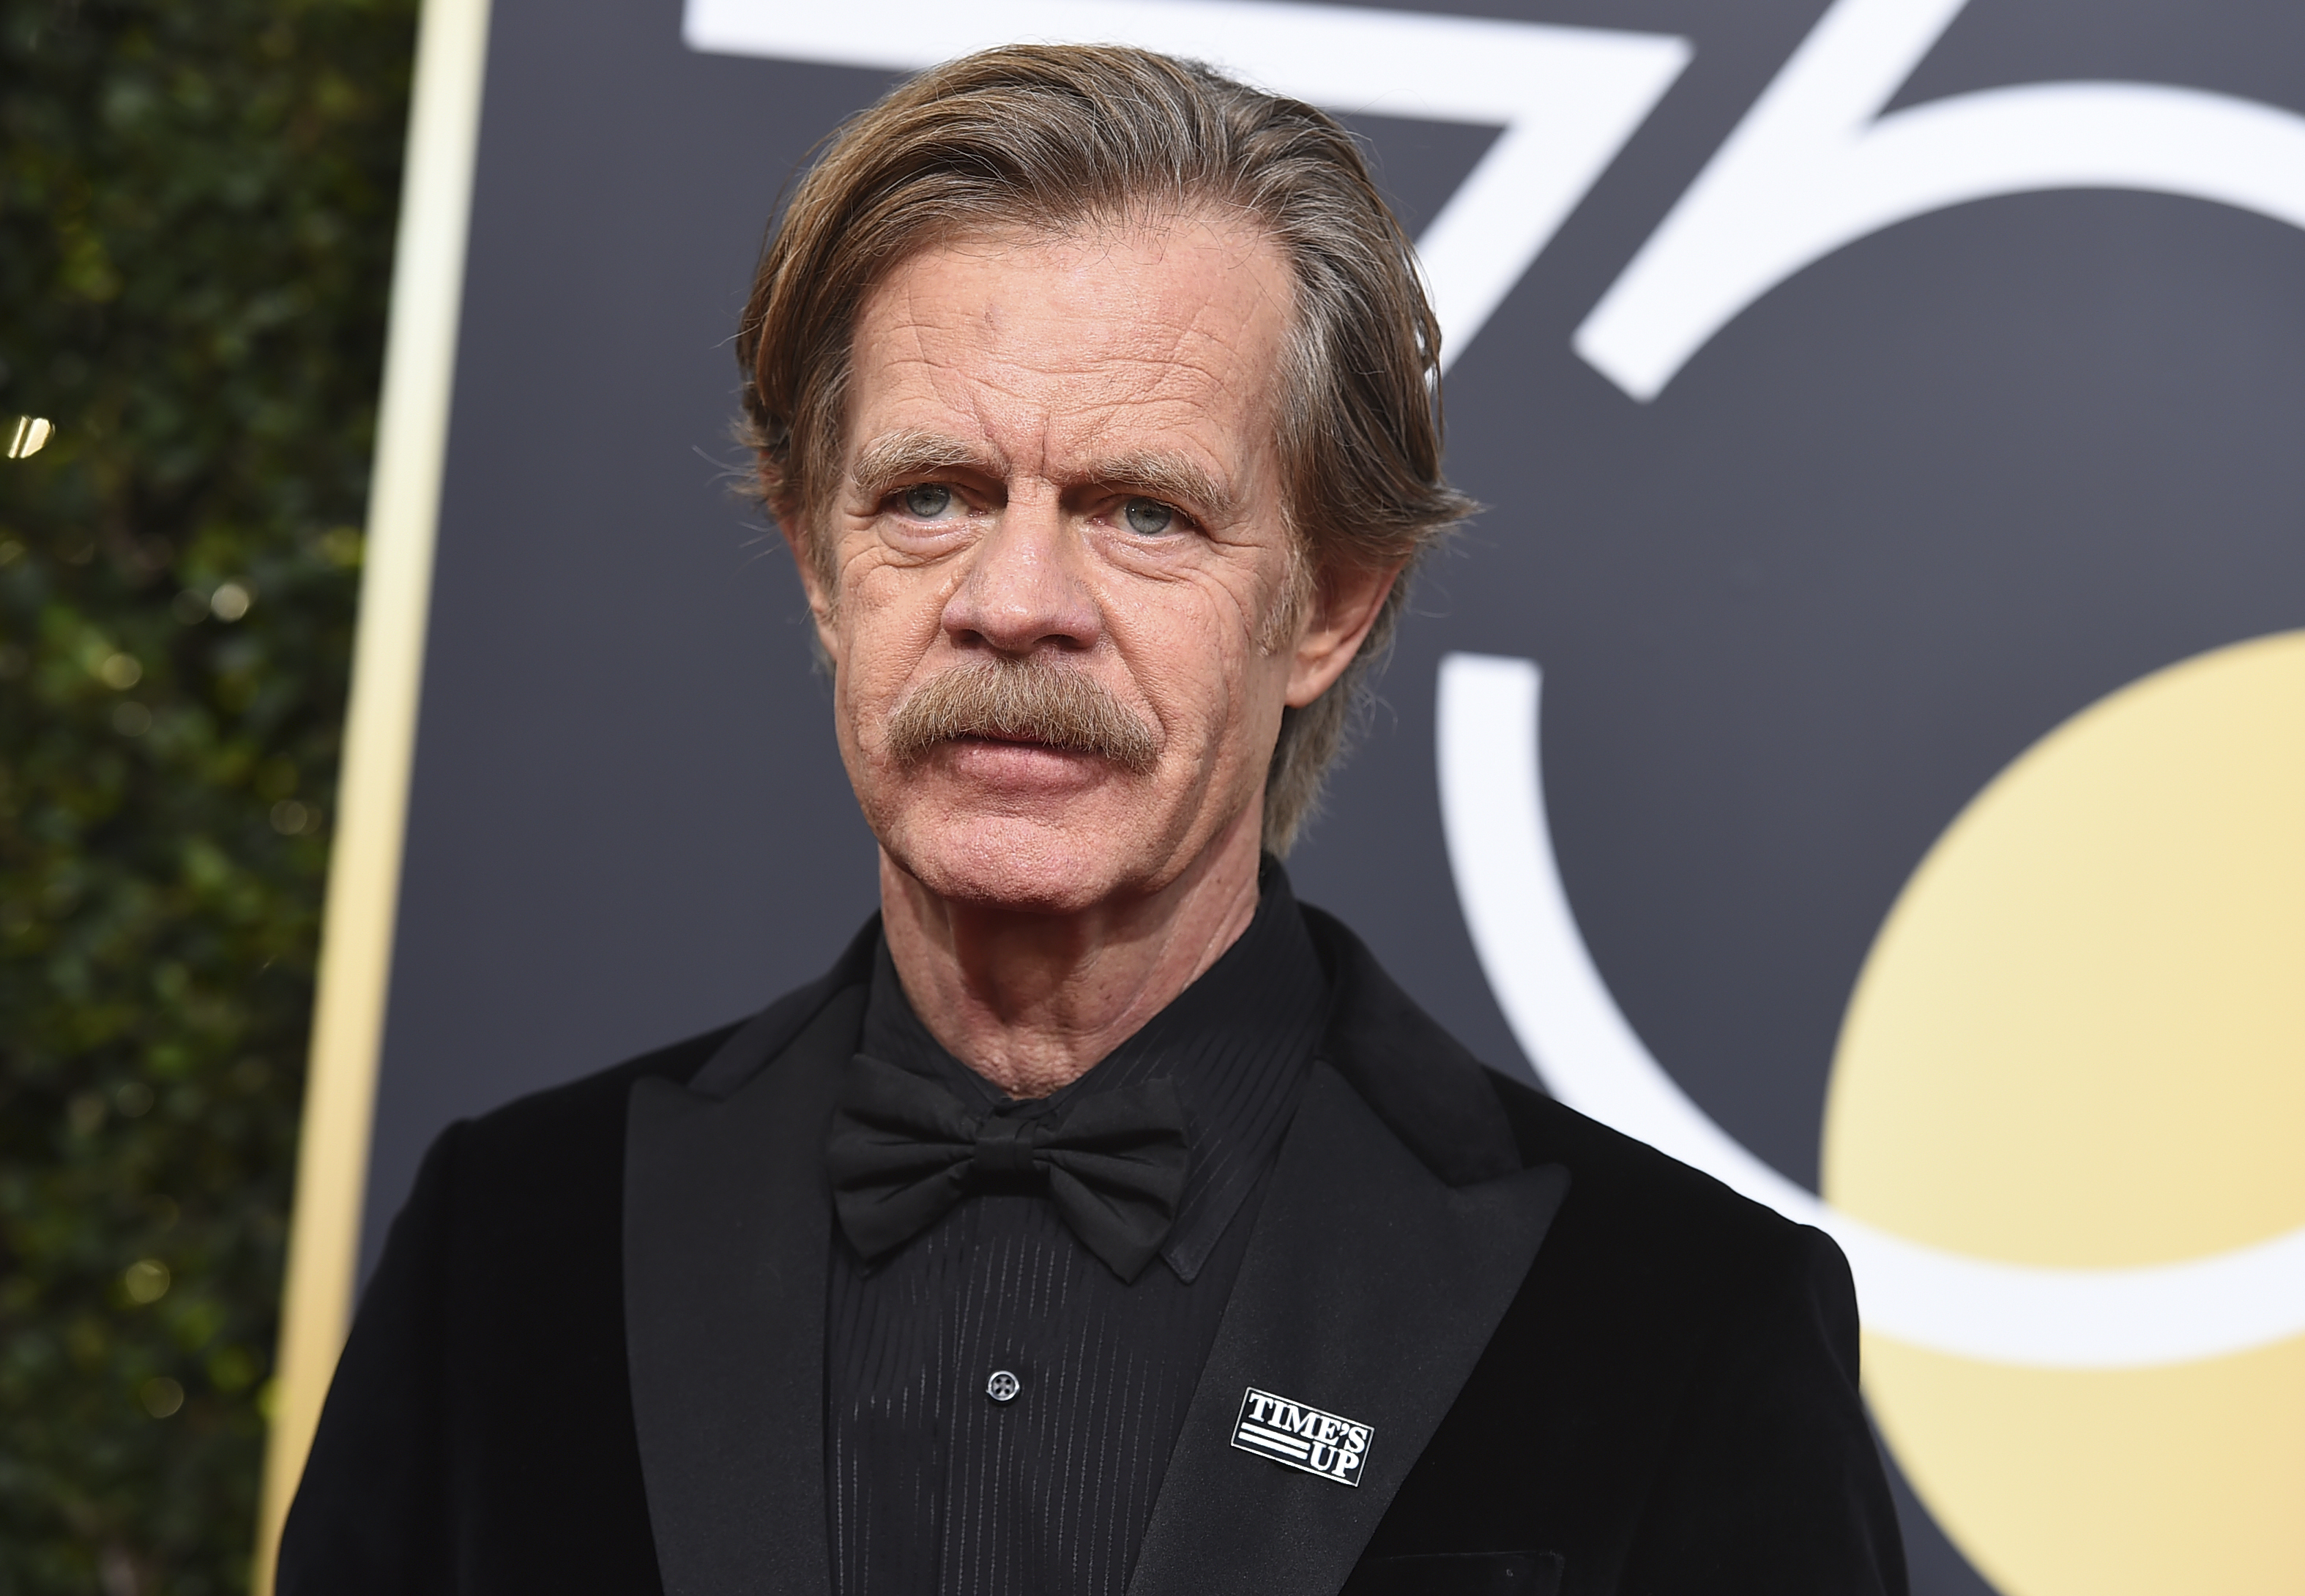 <div class='meta'><div class='origin-logo' data-origin='AP'></div><span class='caption-text' data-credit='Jordan Strauss/Invision/AP'>William H. Macy arrives at the 75th annual Golden Globe Awards at the Beverly Hilton Hotel on Sunday, Jan. 7, 2018, in Beverly Hills, Calif.</span></div>